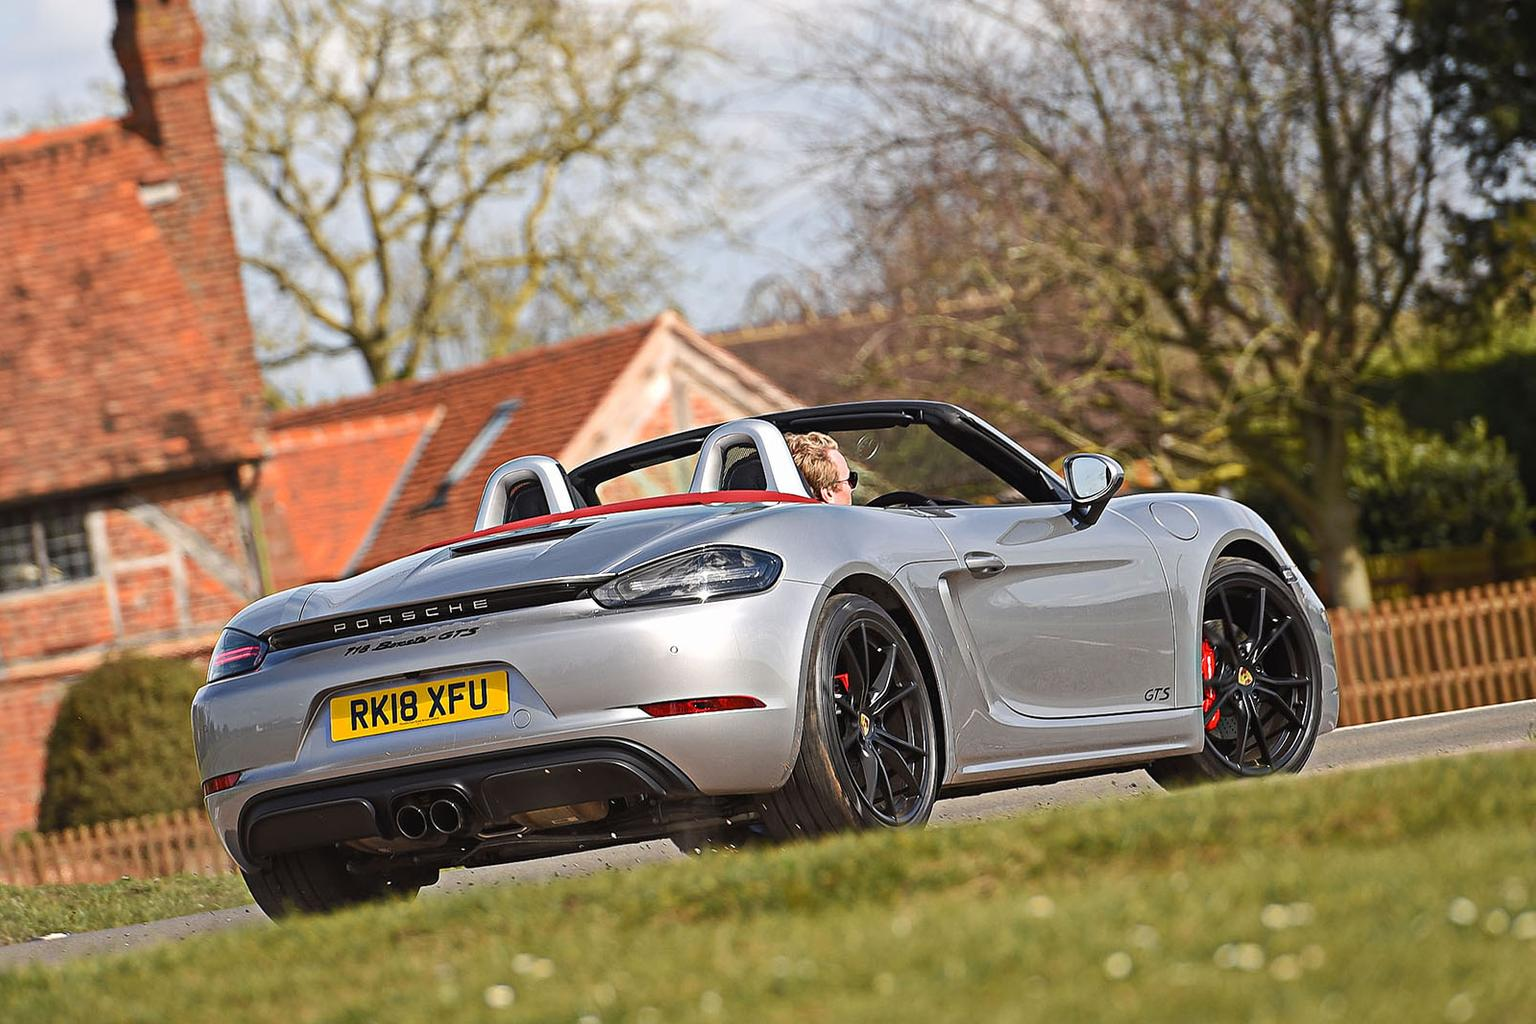 2018 Porsche Boxster GTS review - price, specs and release date